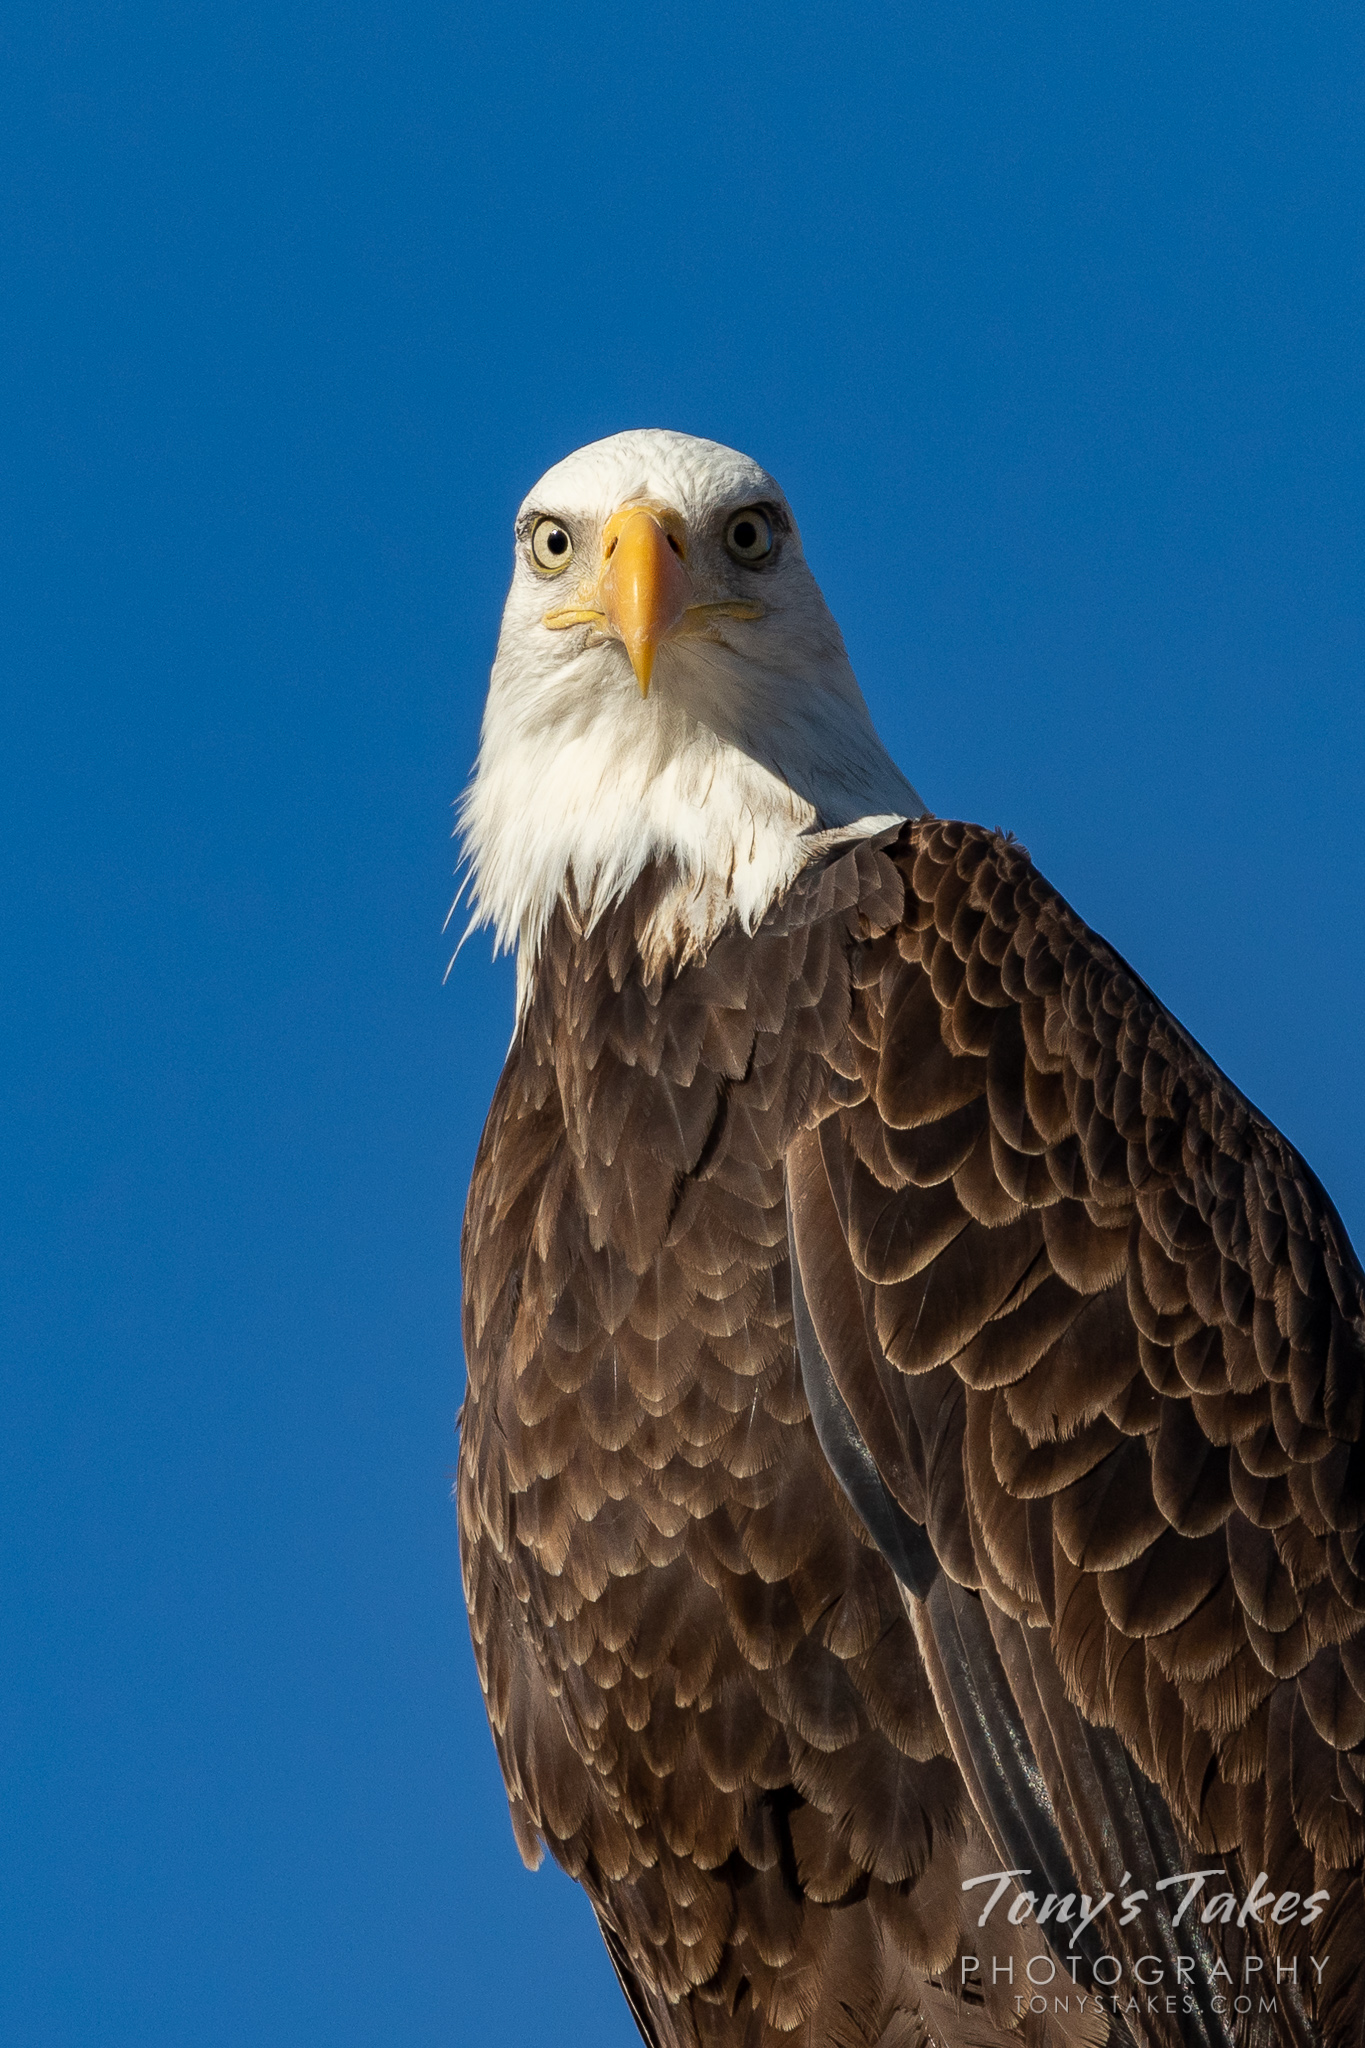 A bald eagle keeps closely focused on the viewer. (© Tony's Takes)